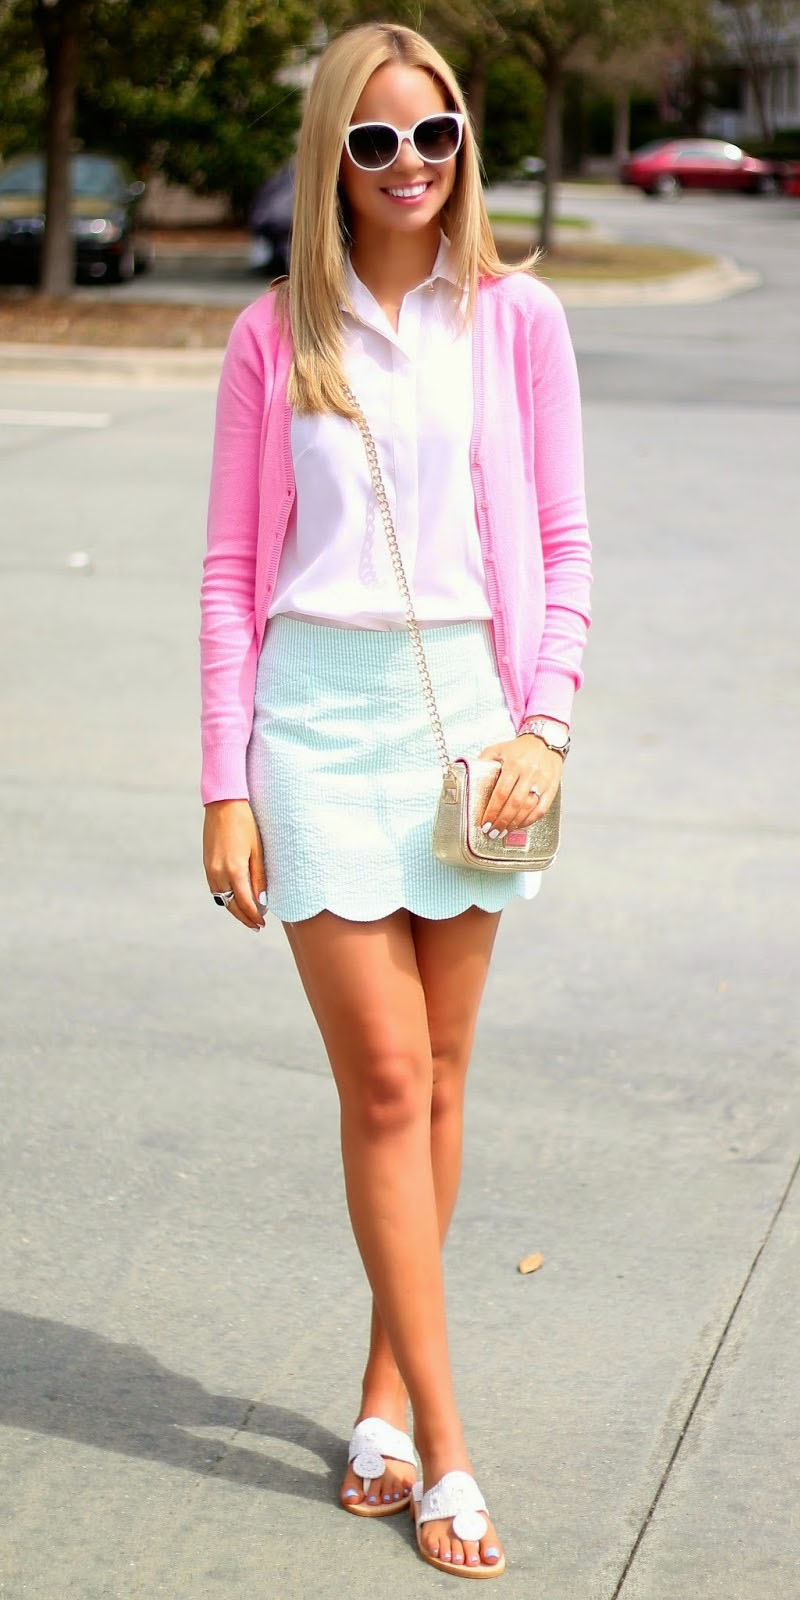 green-light-mini-skirt-pink-light-collared-shirt-pink-light-cardigan-white-shoe-sandals-tan-bag-sun-blonde-spring-summer-lunch.jpg